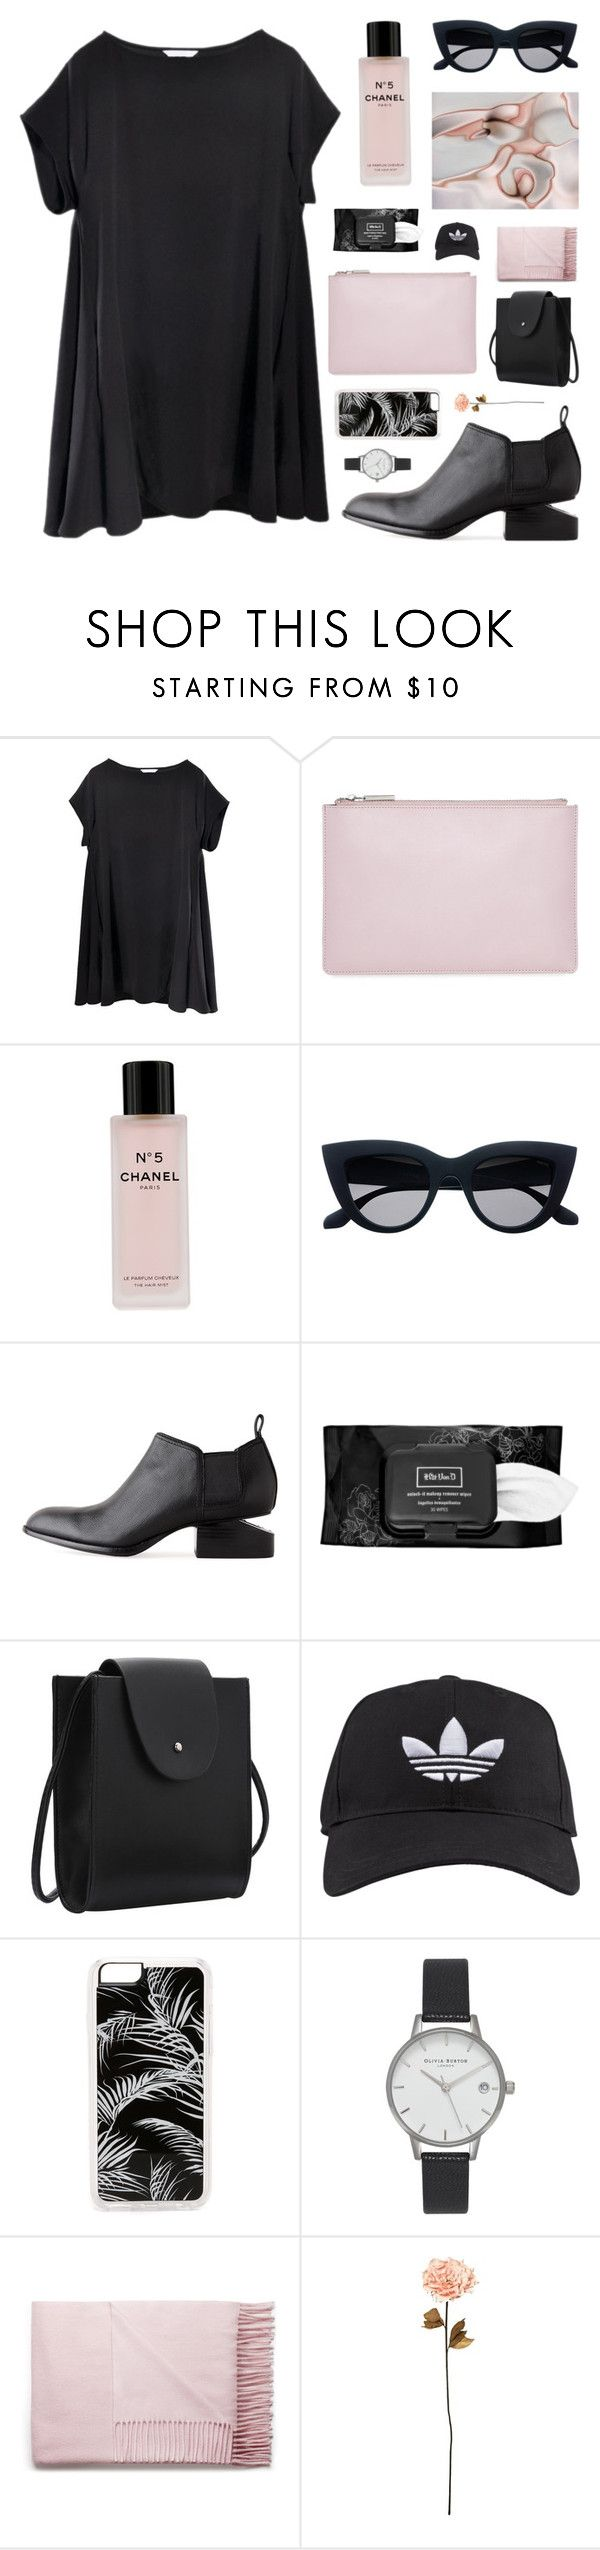 """""""trembling hands"""" by jesicacecillia on Polyvore featuring Whistles, Chanel, Alexander Wang, Kat Von D, adidas, Zero Gravity, Olivia Burton, Acne Studios and Shabby Chic"""